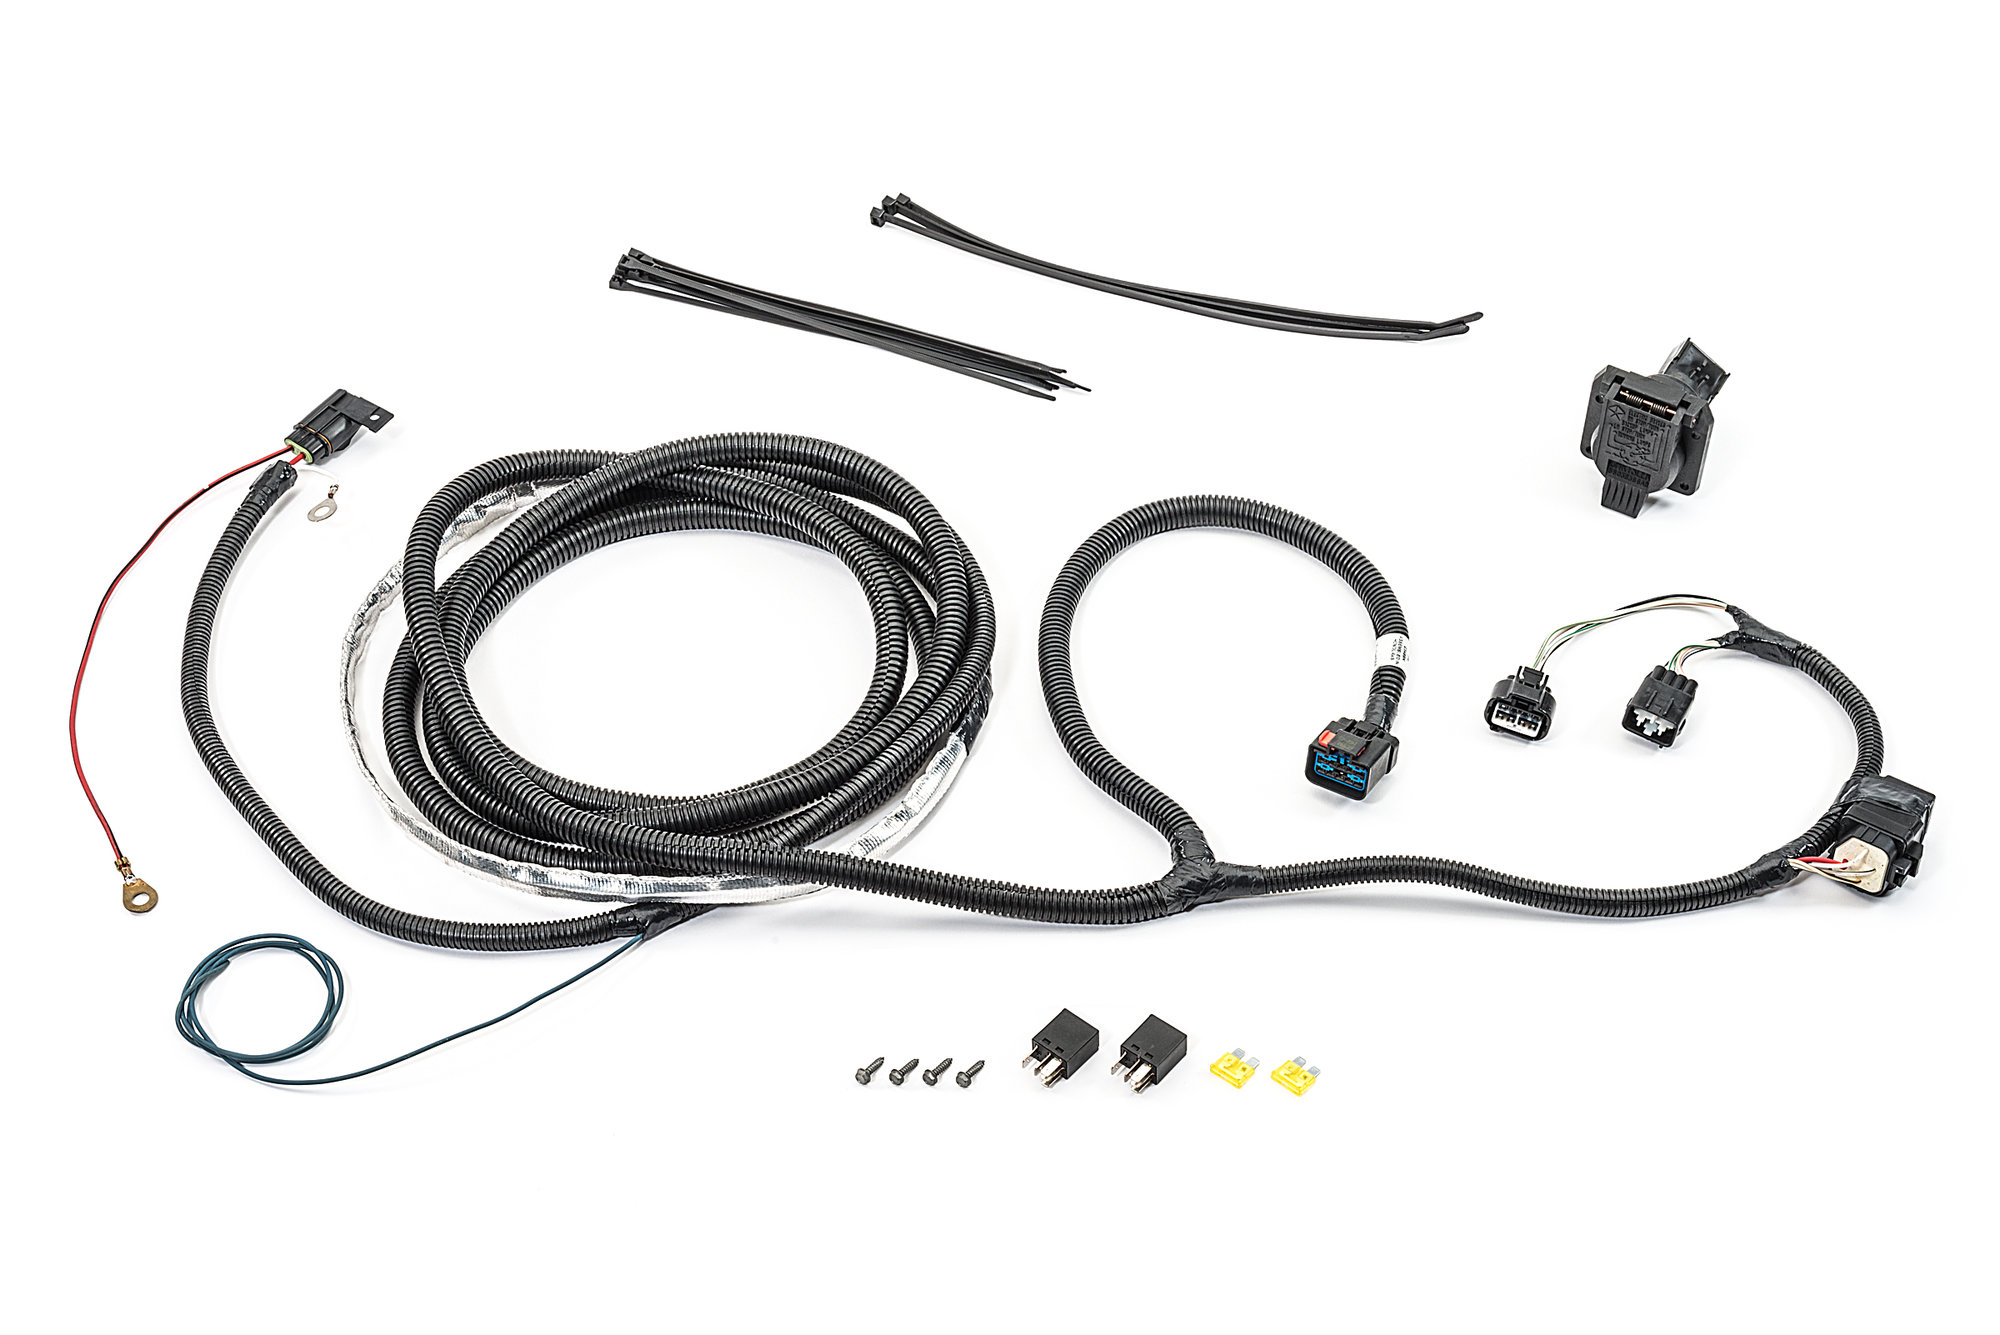 Mopar Ab 7 Way Round Hitch Wiring Harness For 05 06 Jeep Grand Cherokee Wk